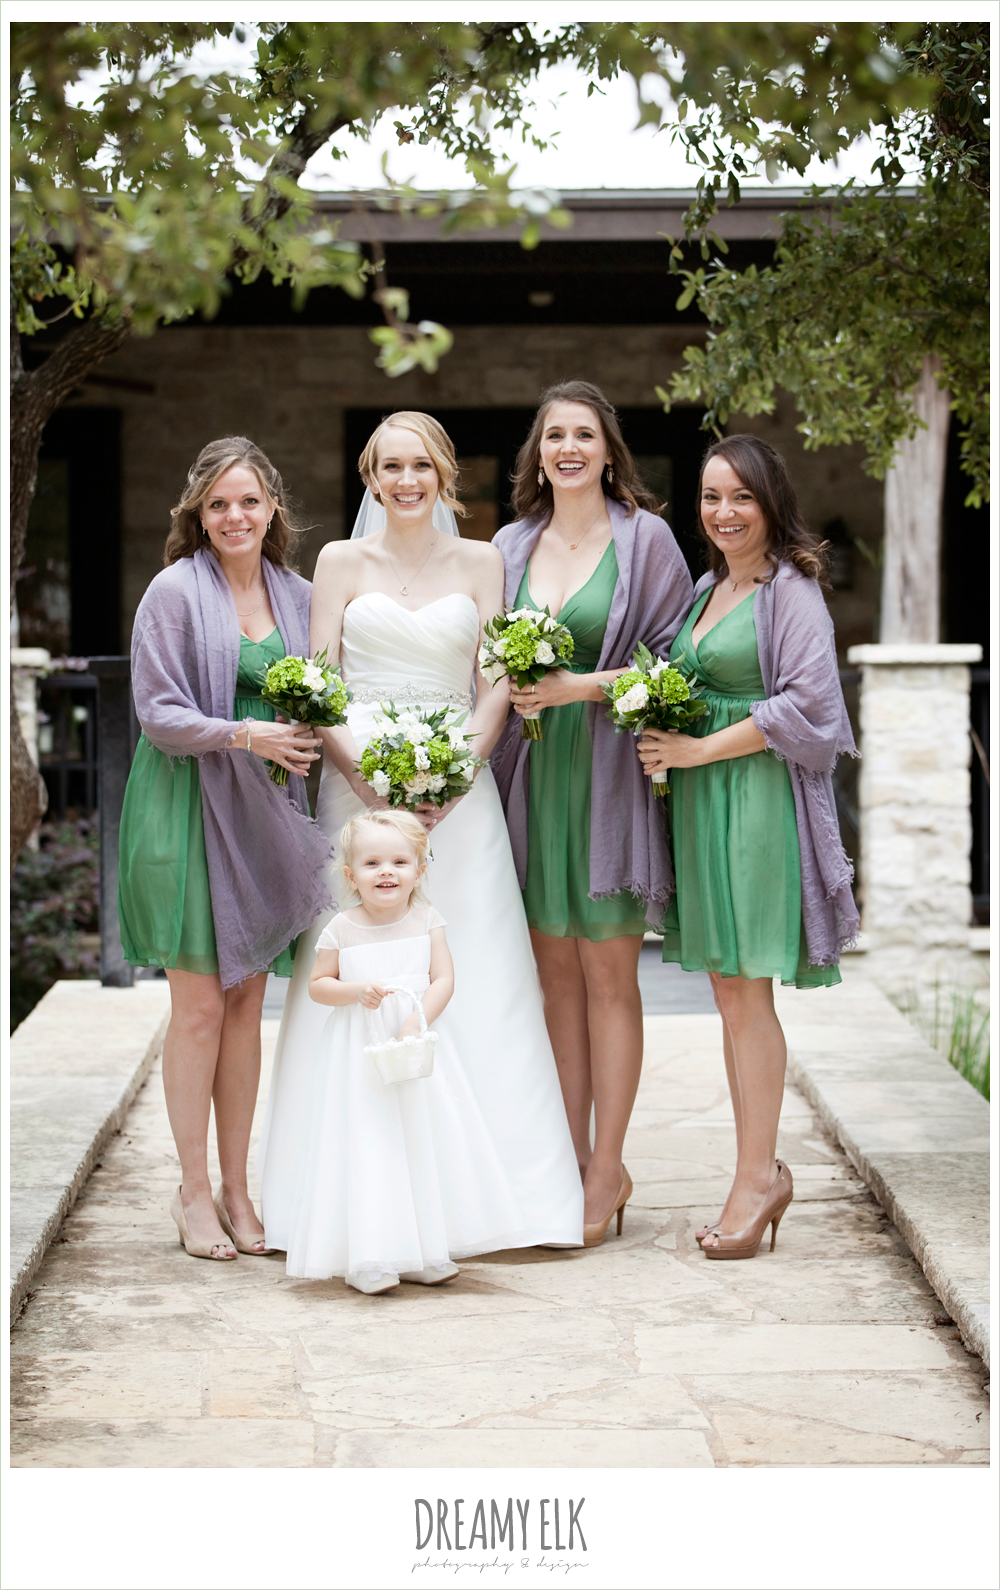 sweetheart strapless wedding dress, short green bridesmaids dresses, purple shawls, winter vineyard wedding, dreamy elk photography and design